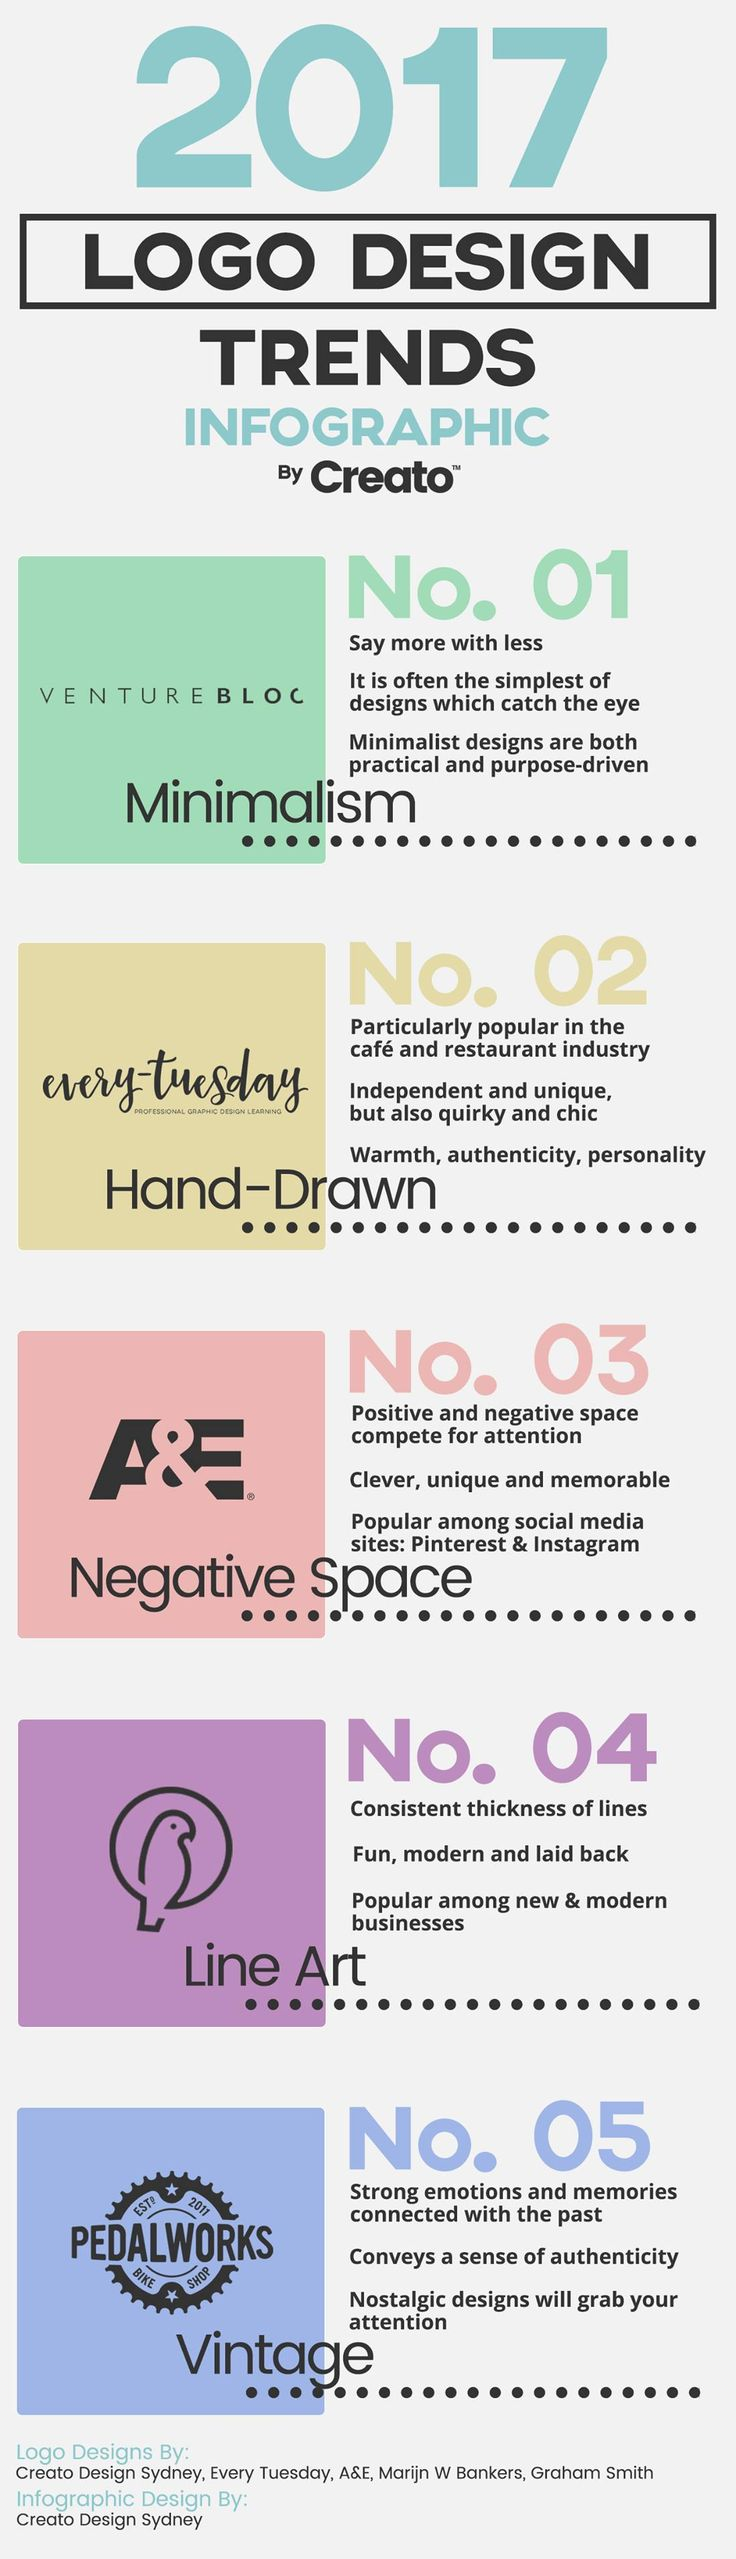 These trends are likely to strengthen and become even more popular in the new ye…